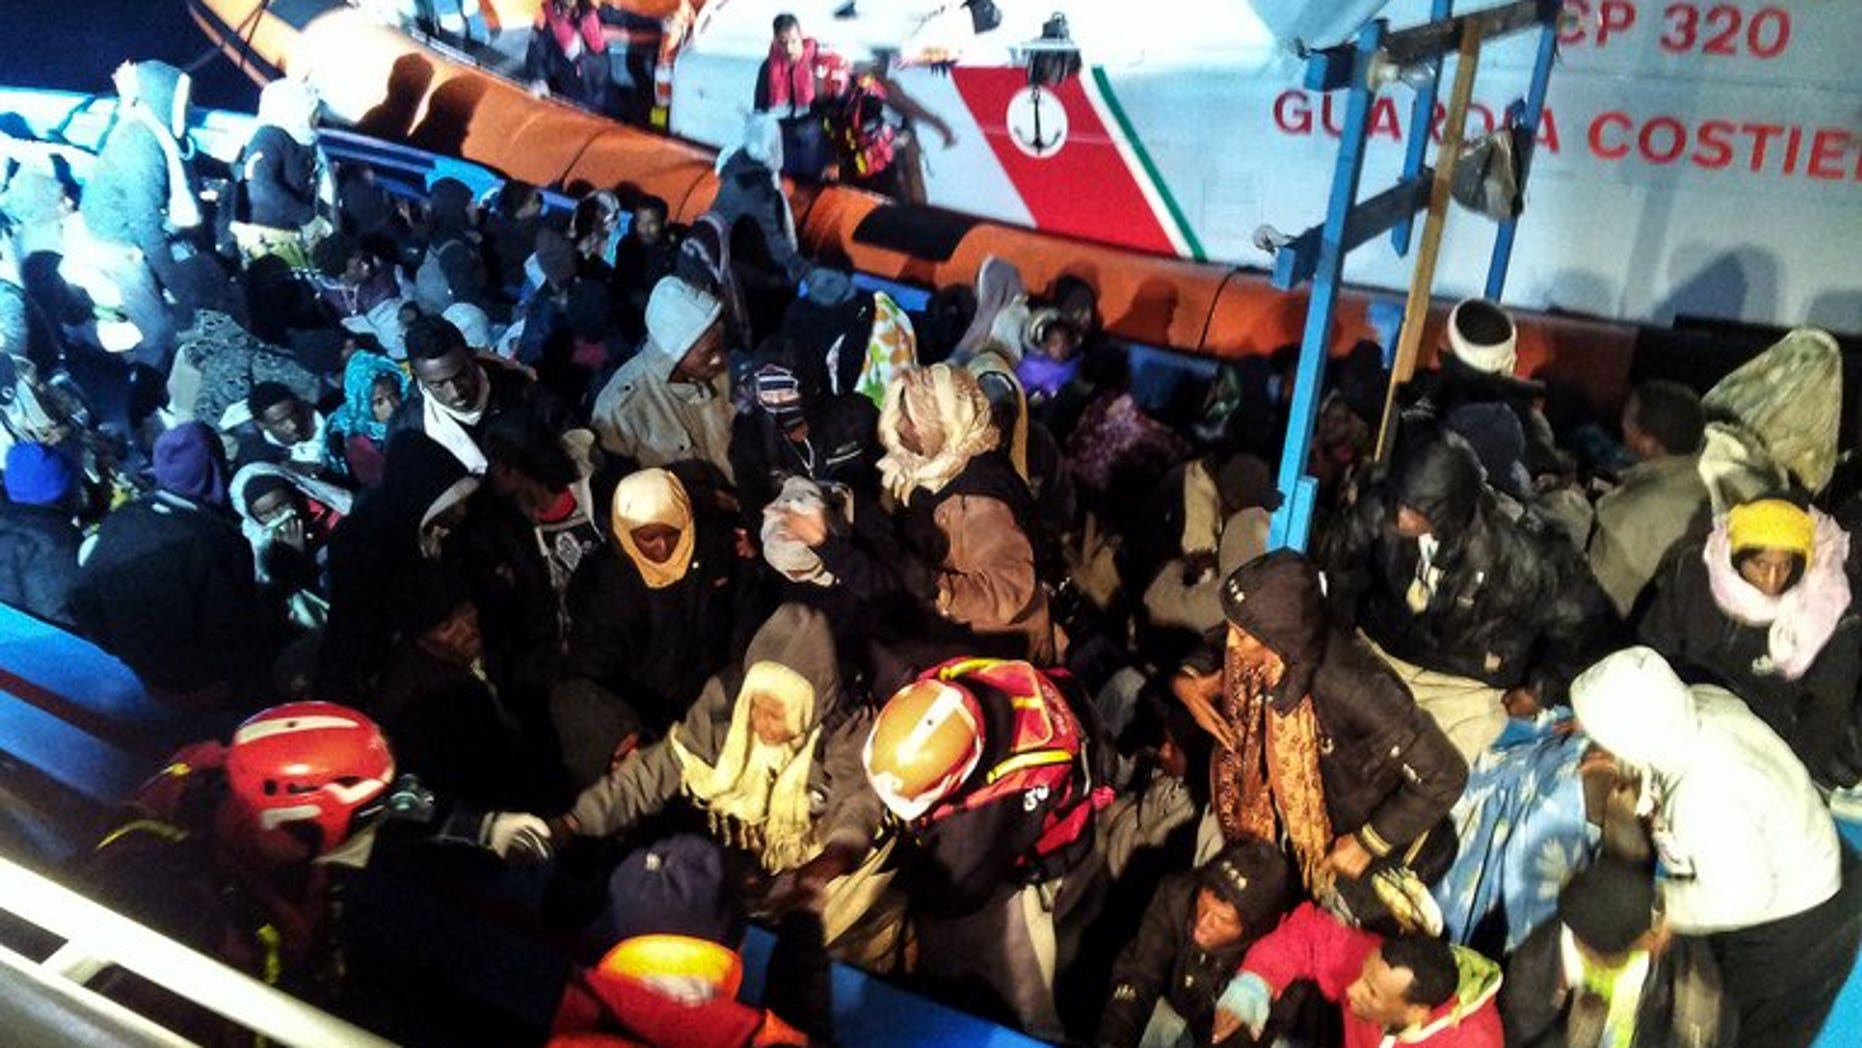 A handout photo provided on December 15, 2012 by the Italian Coast Guard press office shows a boat carrying 218 sub-Saharan migrants near the island of Lampedusa on December 14. The Italian coast guard said Saturday it had rescued more than 200 migrants off Sicily, swelling the ranks of the thousands of boat people who have made the crossing thanks to calm summer waters.